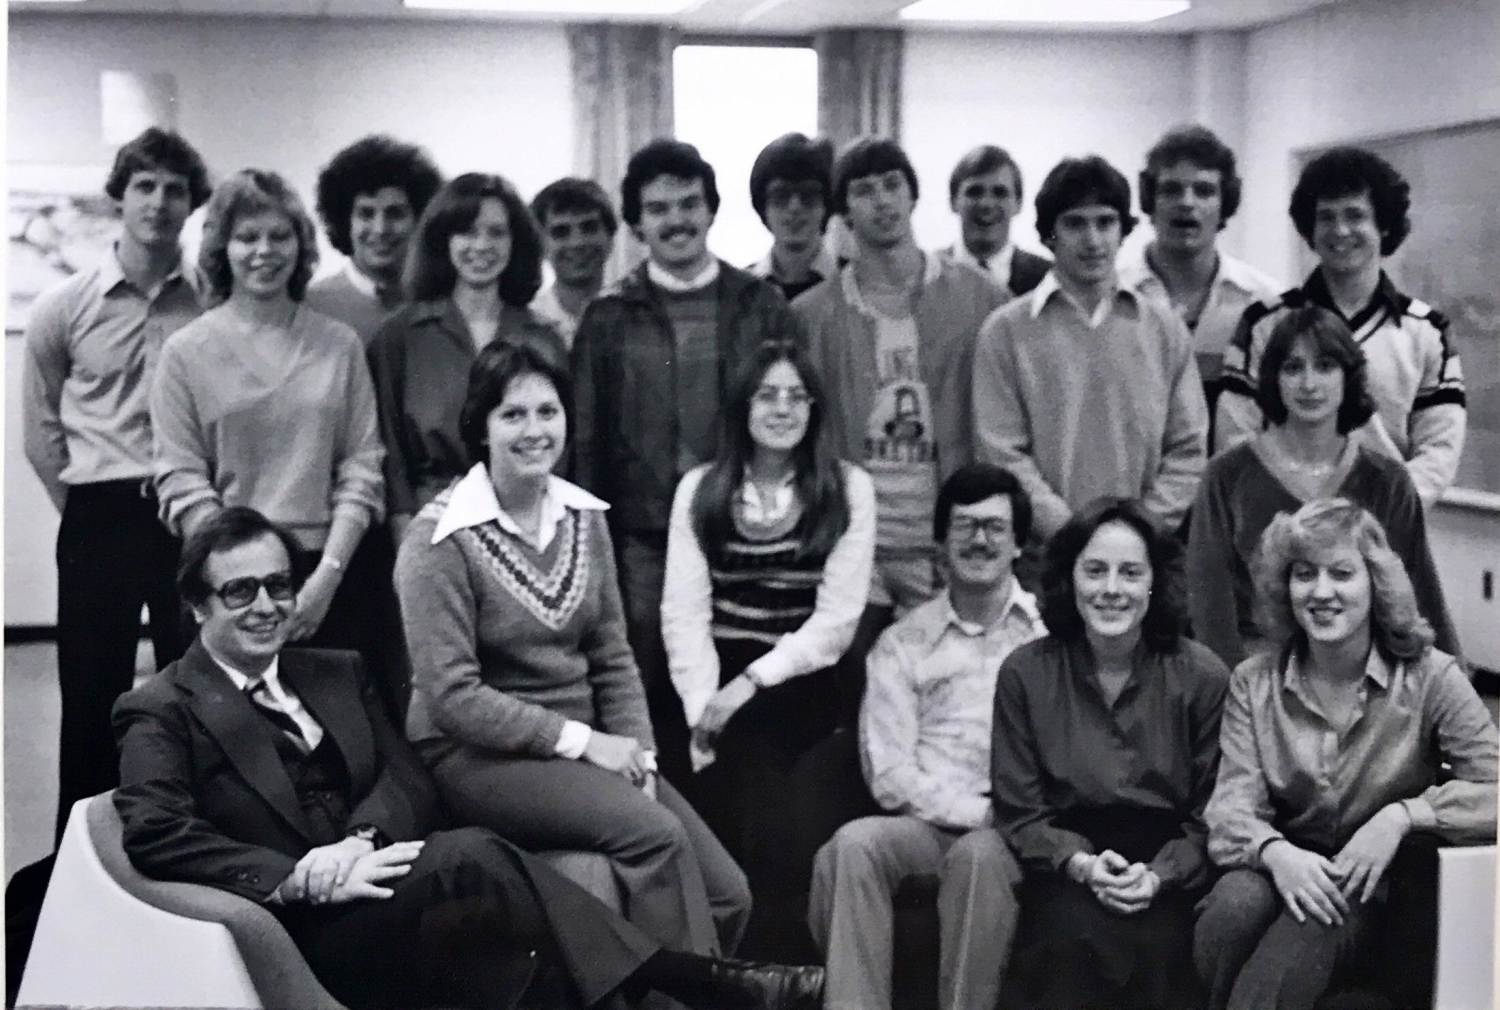 Members of the 1980 Alpha Upsilon chapter with their advisor, Park Leathers